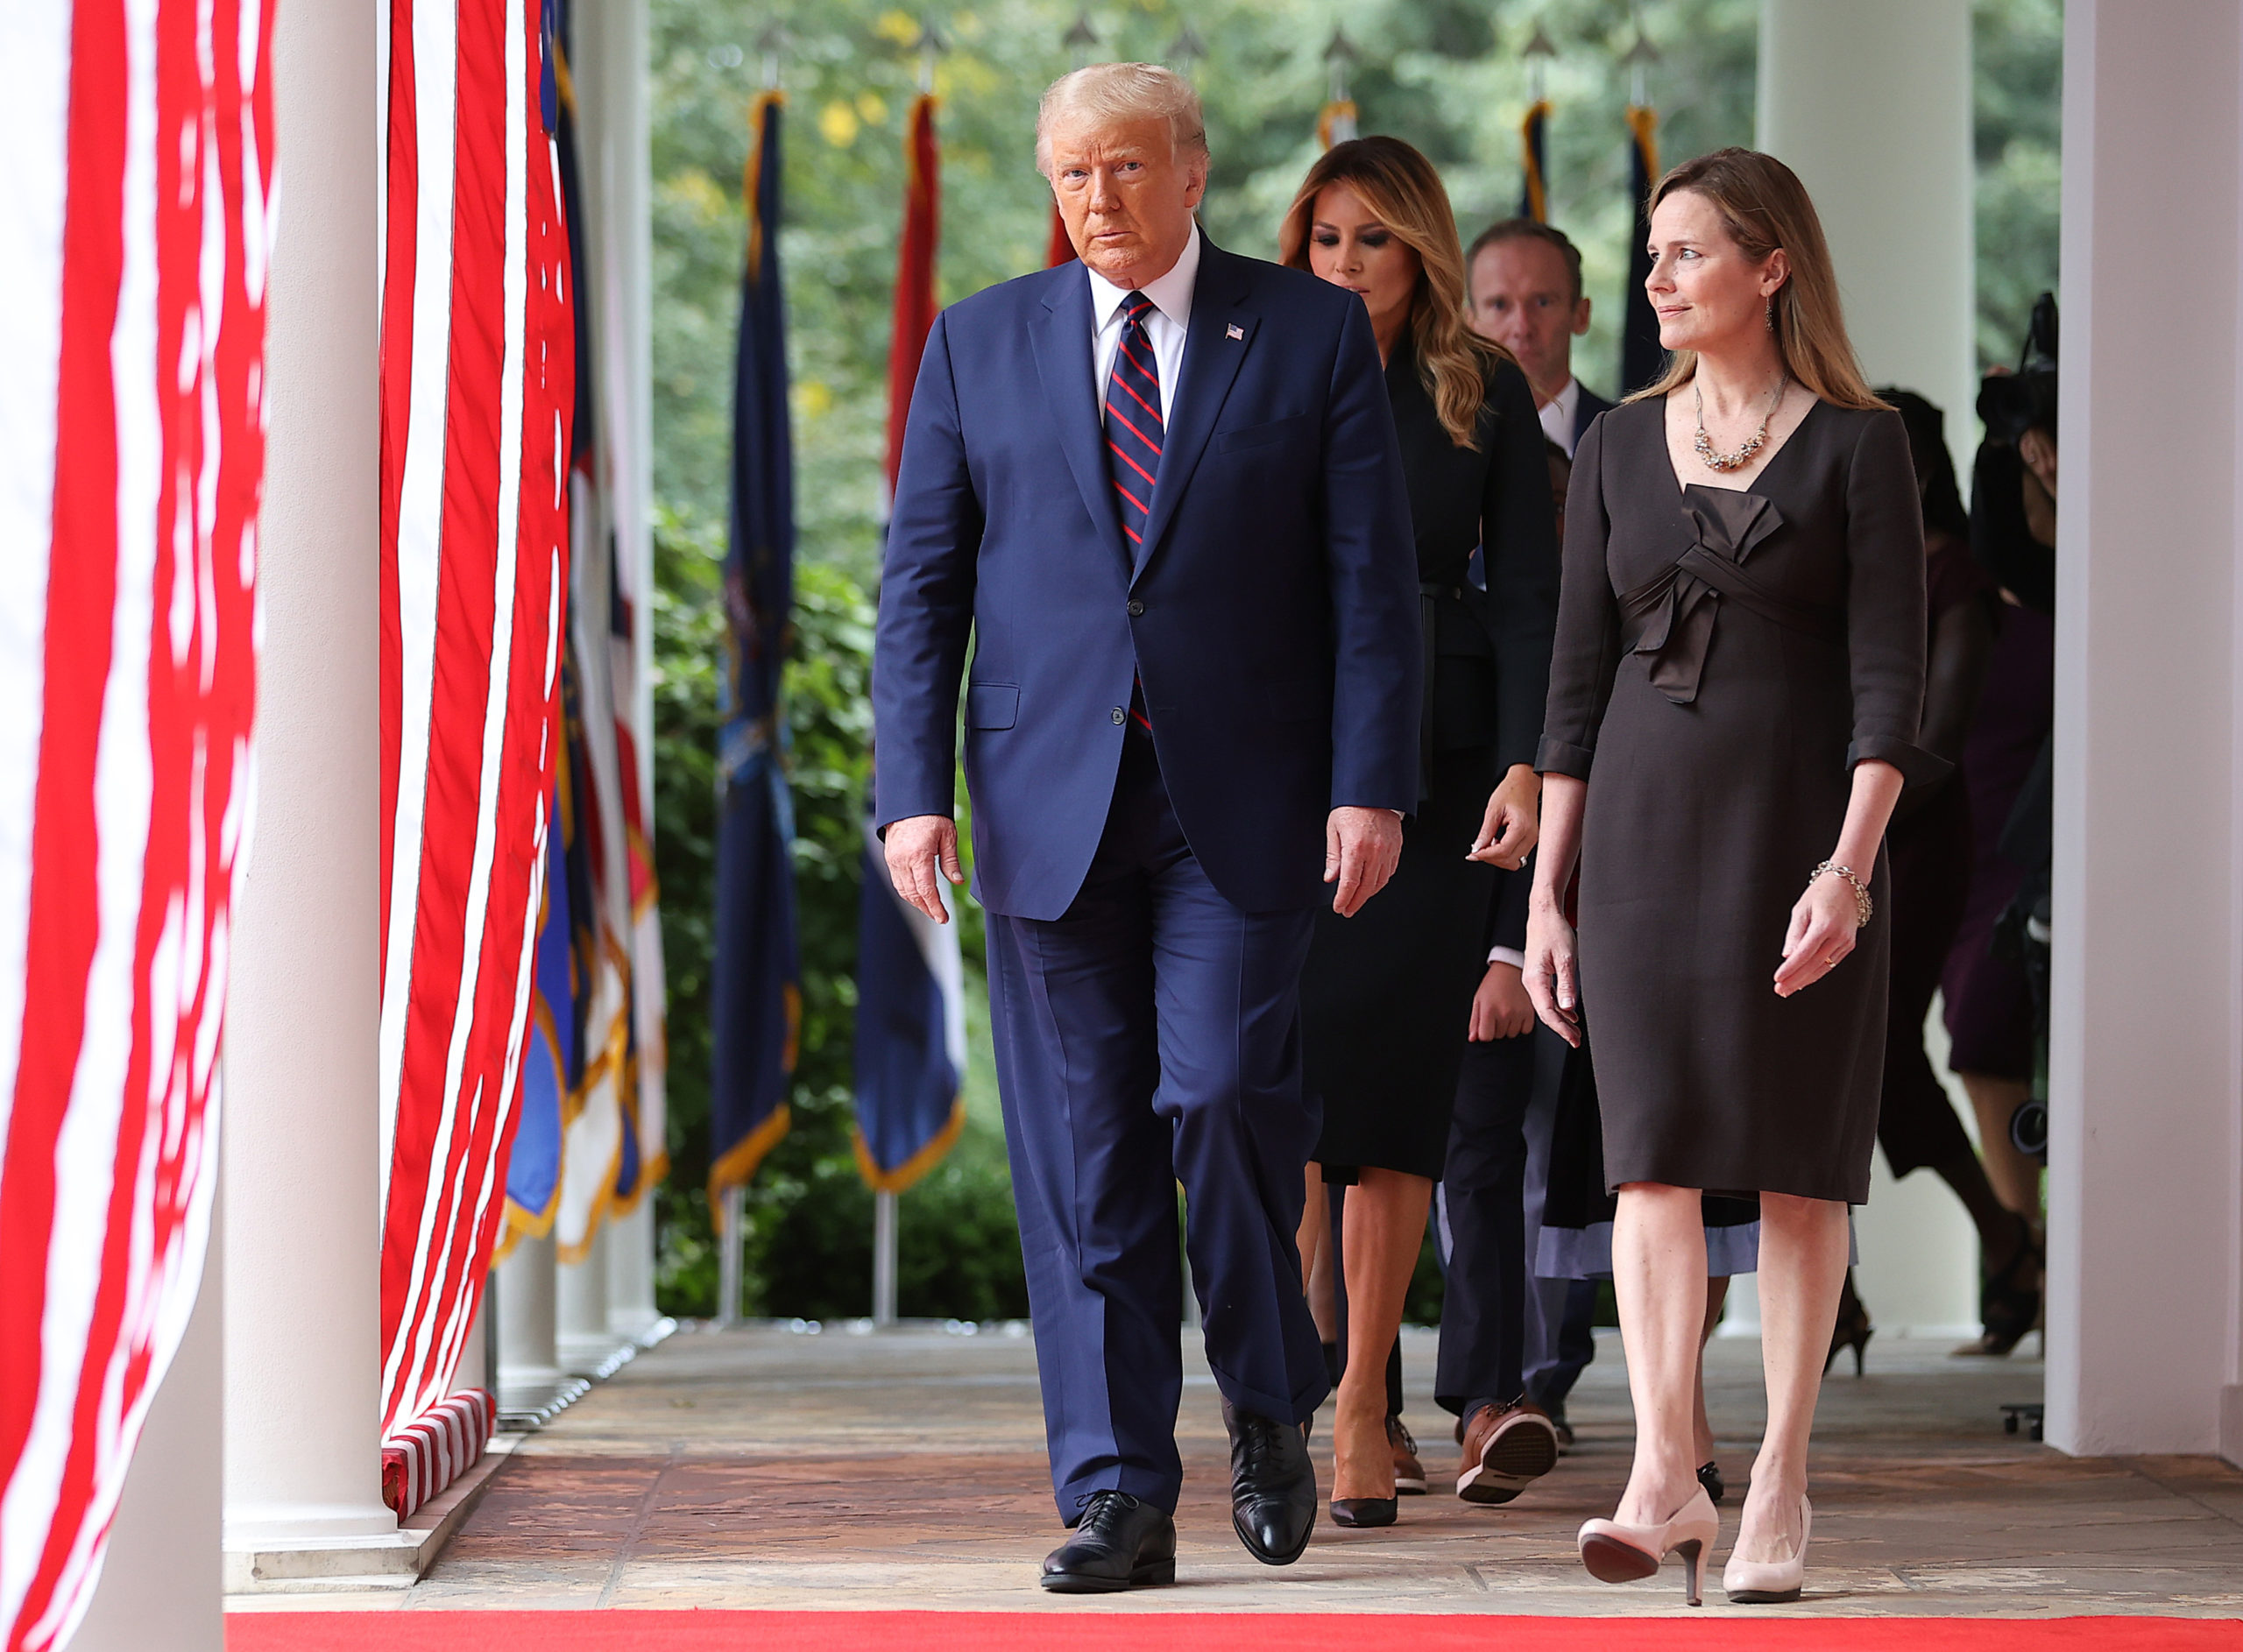 WASHINGTON, DC - SEPTEMBER 26: U.S. President Donald Trump (L) arrives to introduce 7th U.S. Circuit Court Judge Amy Coney Barrett as his nominee to the Supreme Court in the Rose Garden at the White House September 26, 2020 in Washington, DC. With 38 days until the election, Trump tapped Barrett to be his third Supreme Court nominee in just four years and to replace the late Associate Justice Ruth Bader Ginsburg, who will be buried at Arlington National Cemetery on Tuesday. (Photo by Chip Somodevilla/Getty Images)